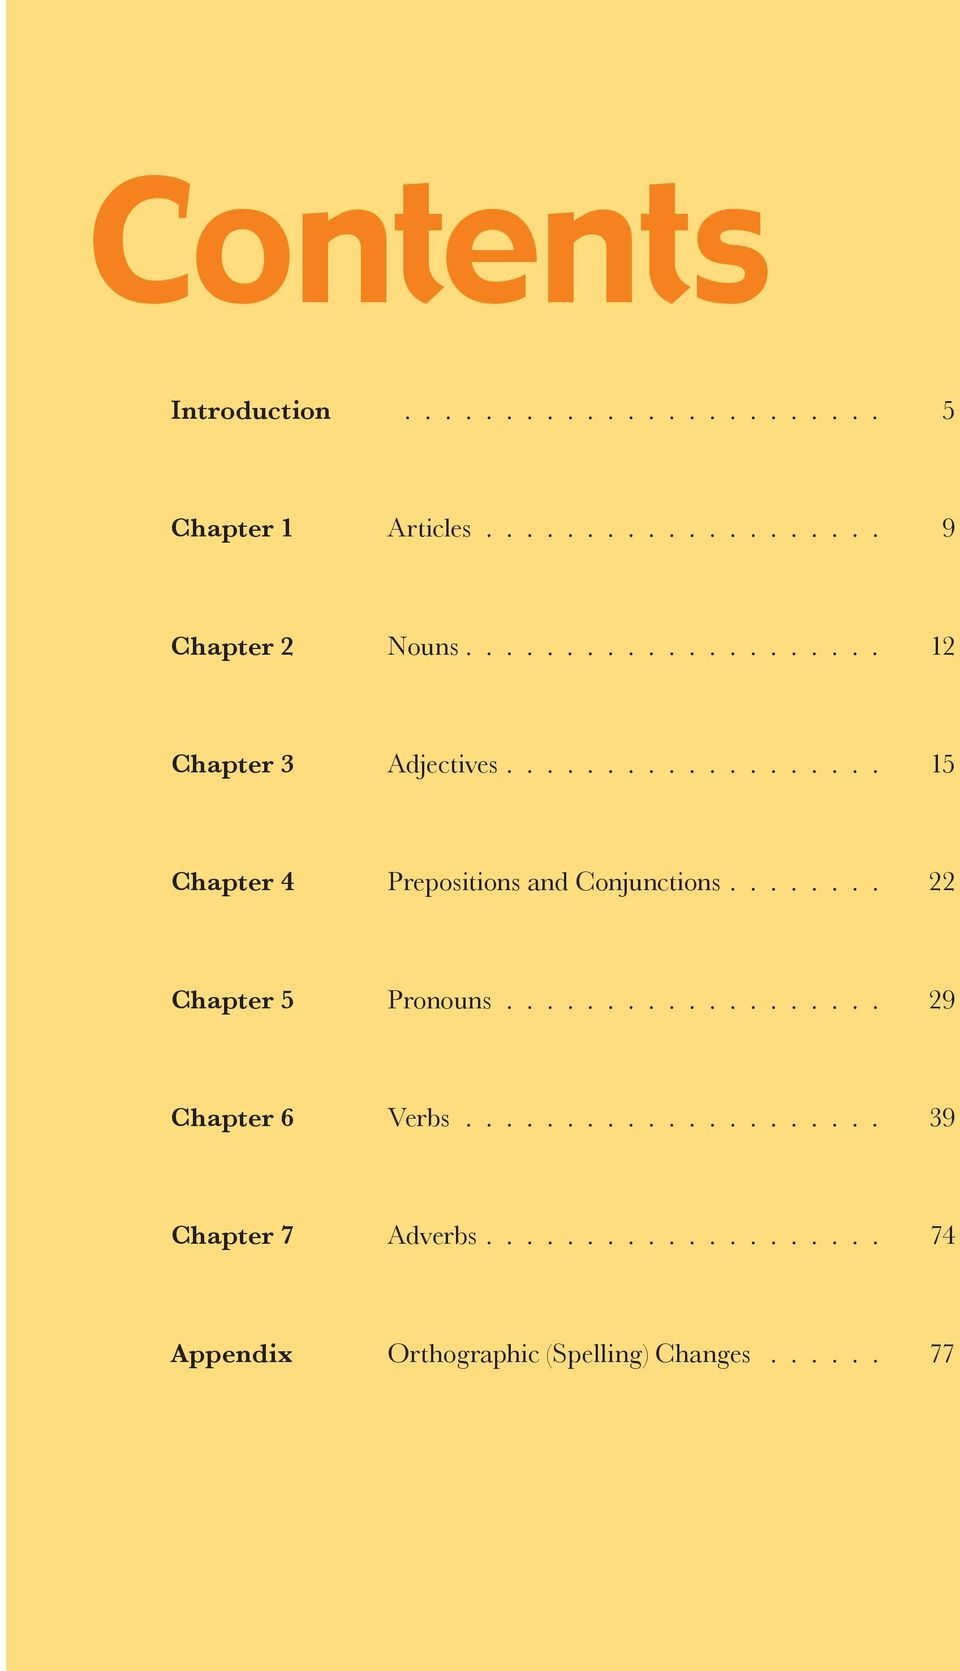 ....... 22 Chapter 5 Pronouns................... 29 Chapter 6 Verbs..................... 39 Chapter 7 Adverbs.